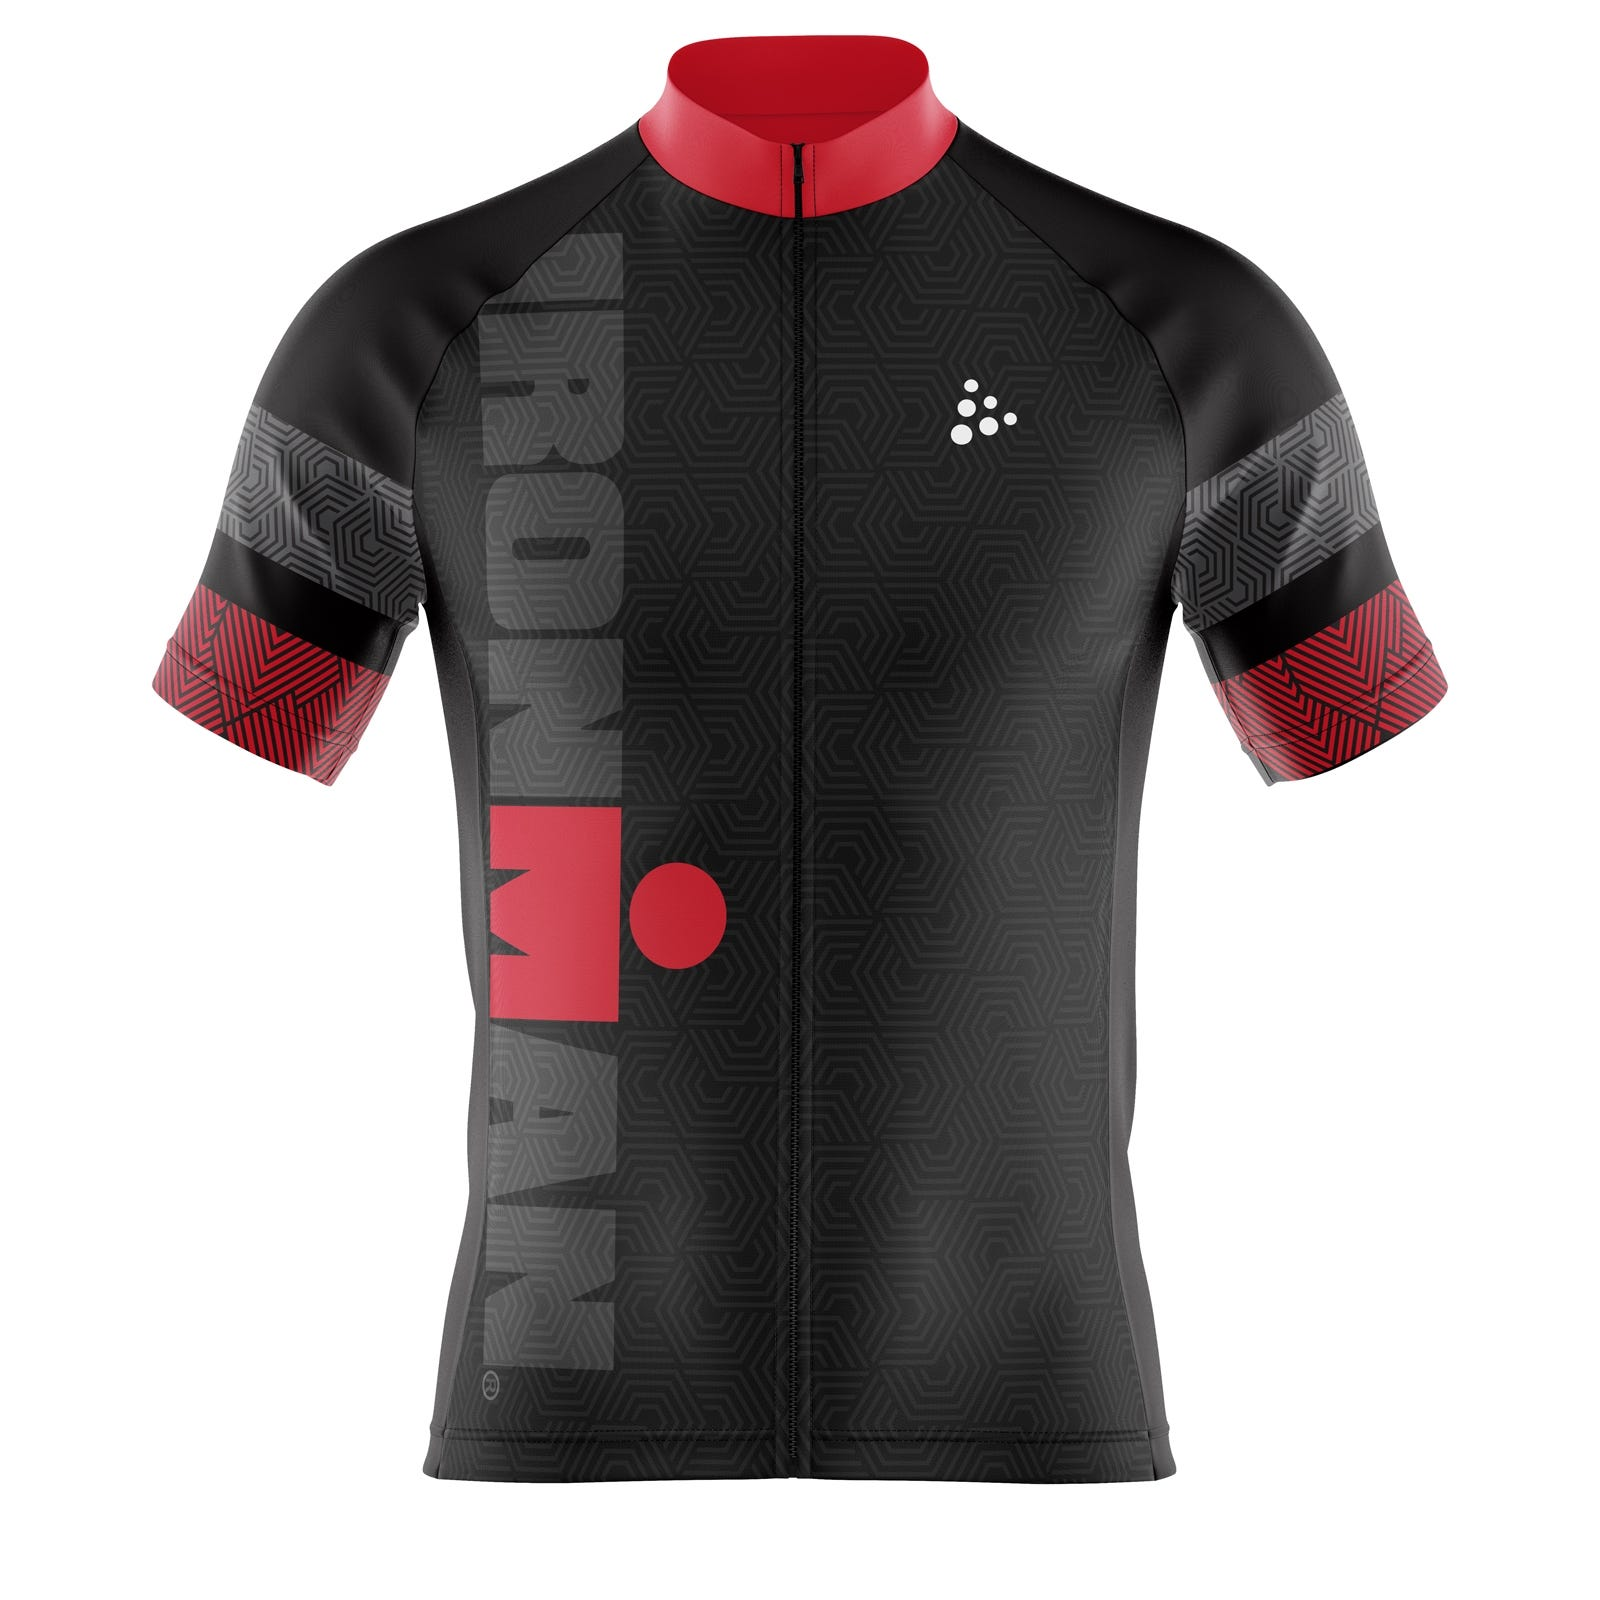 77107dd0b5a IRONMAN Craft Men's Cycle Jersey-Black/Red